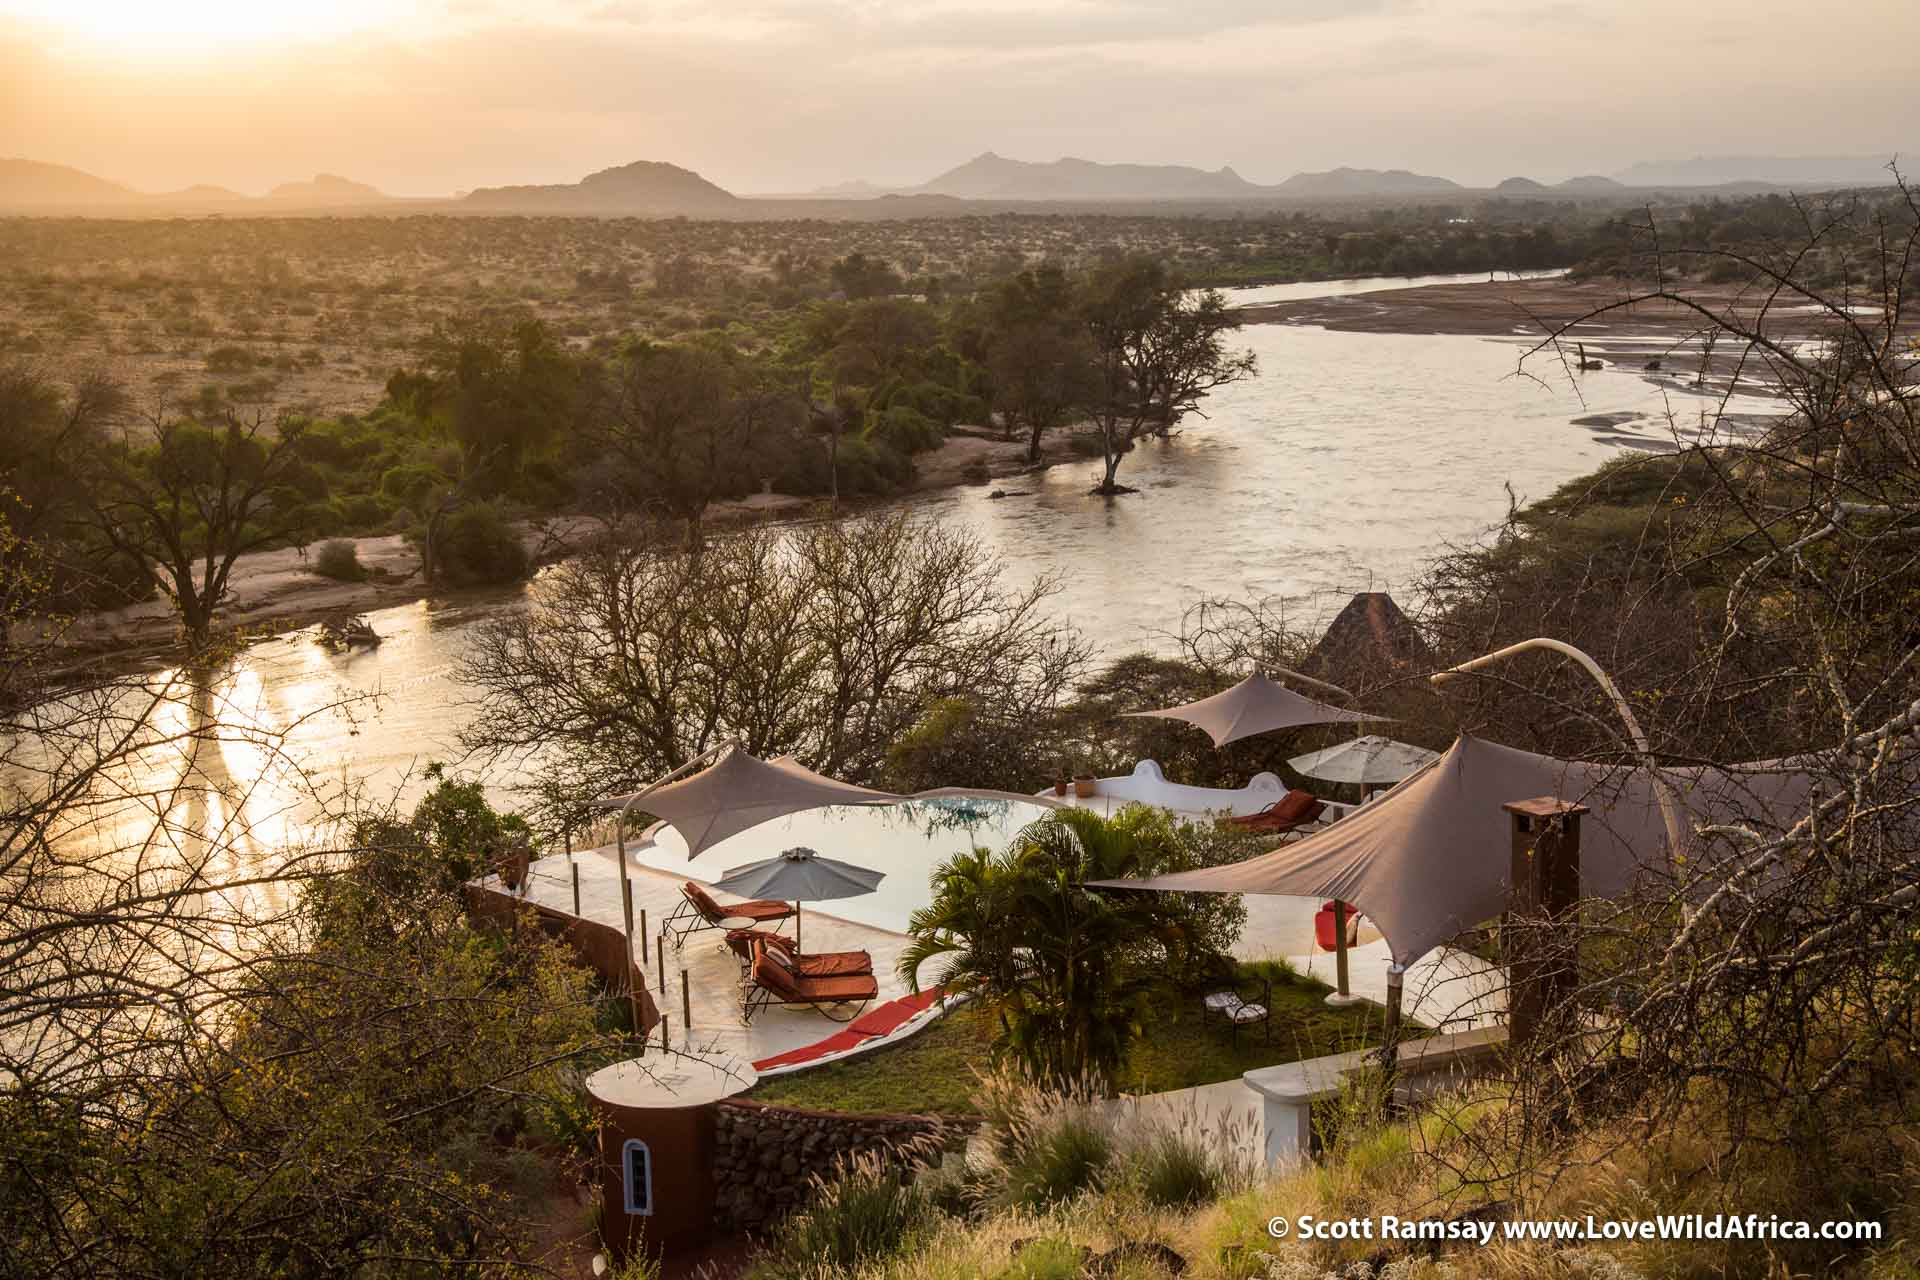 Sasaab Lodge is on a ridge above the Ewaso Ng'iro River, one of the more memorable lodve views I've seen in Africa.